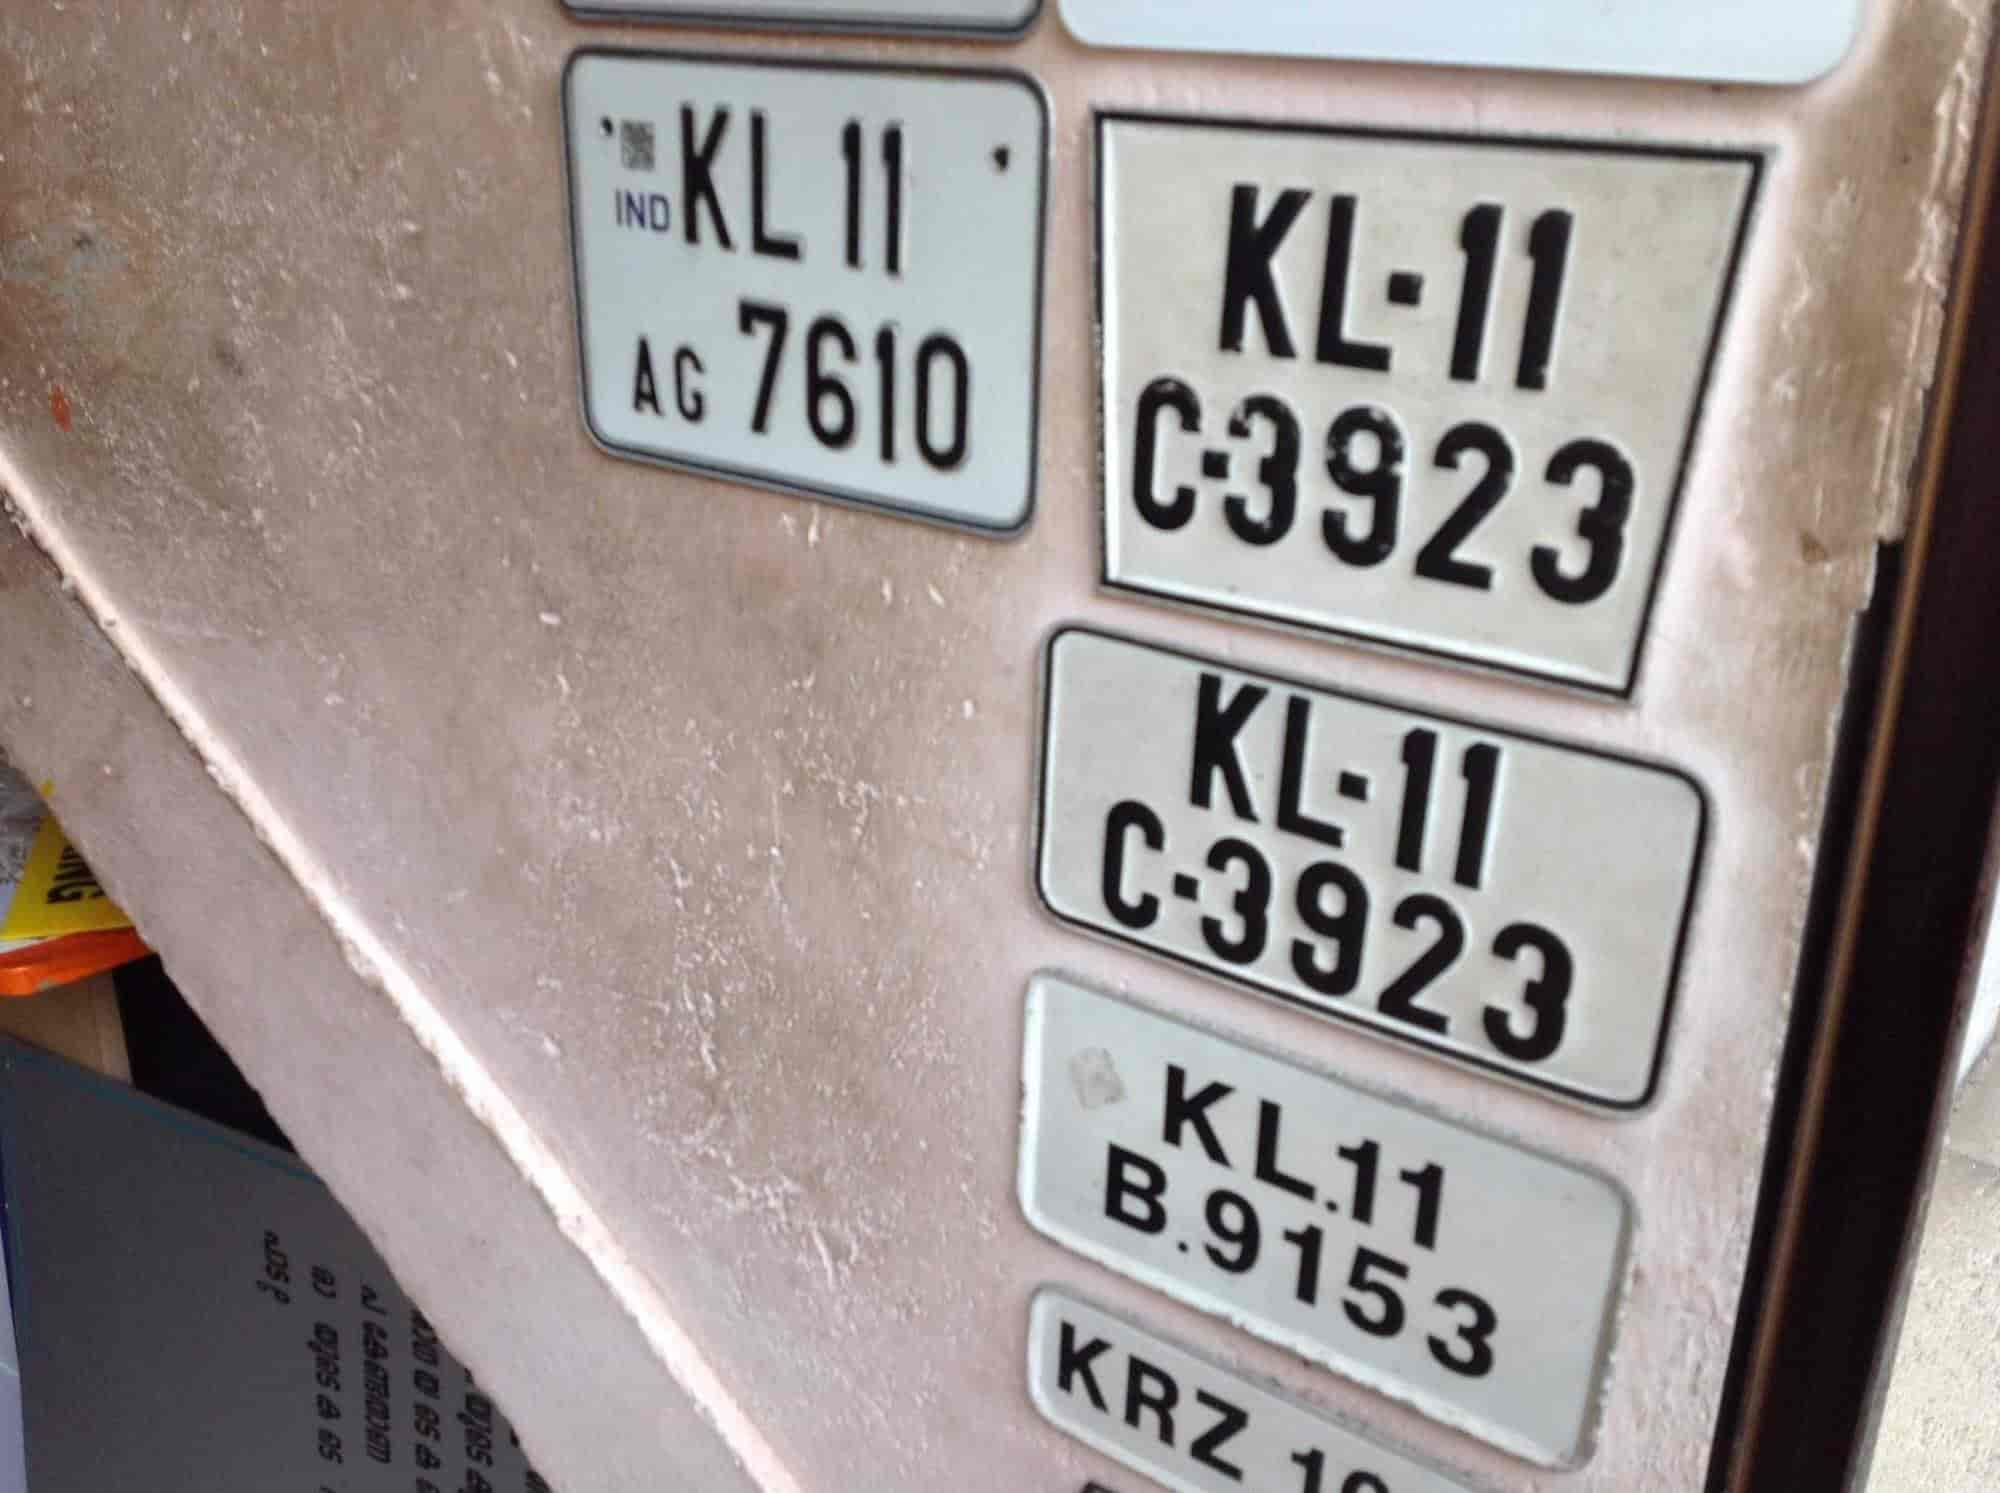 Number plate nice sticker cutting photos ymca road kozhikode sticker cutting services